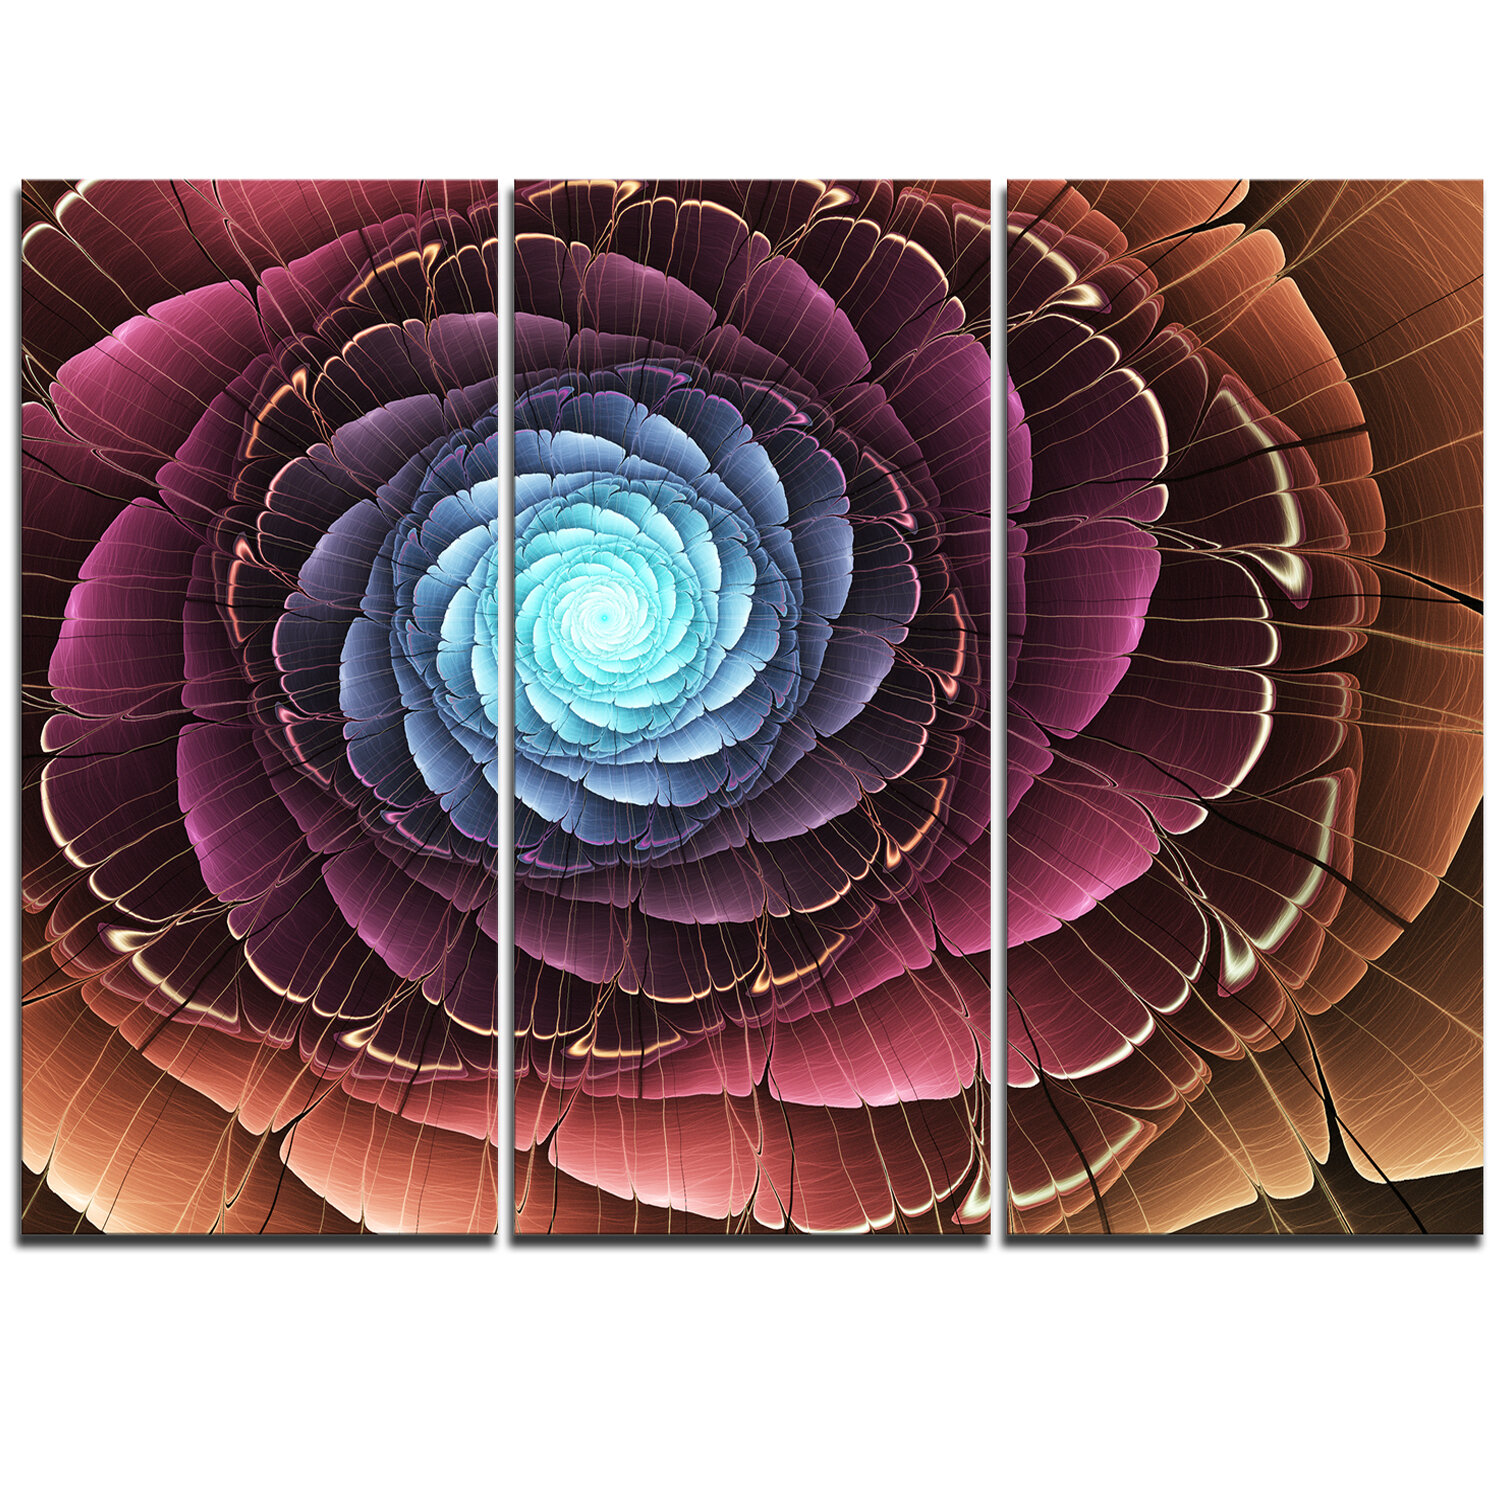 Designart Fractal Flower Pink Brown 3 Piece Graphic Art On Wrapped Canvas Set Wayfair